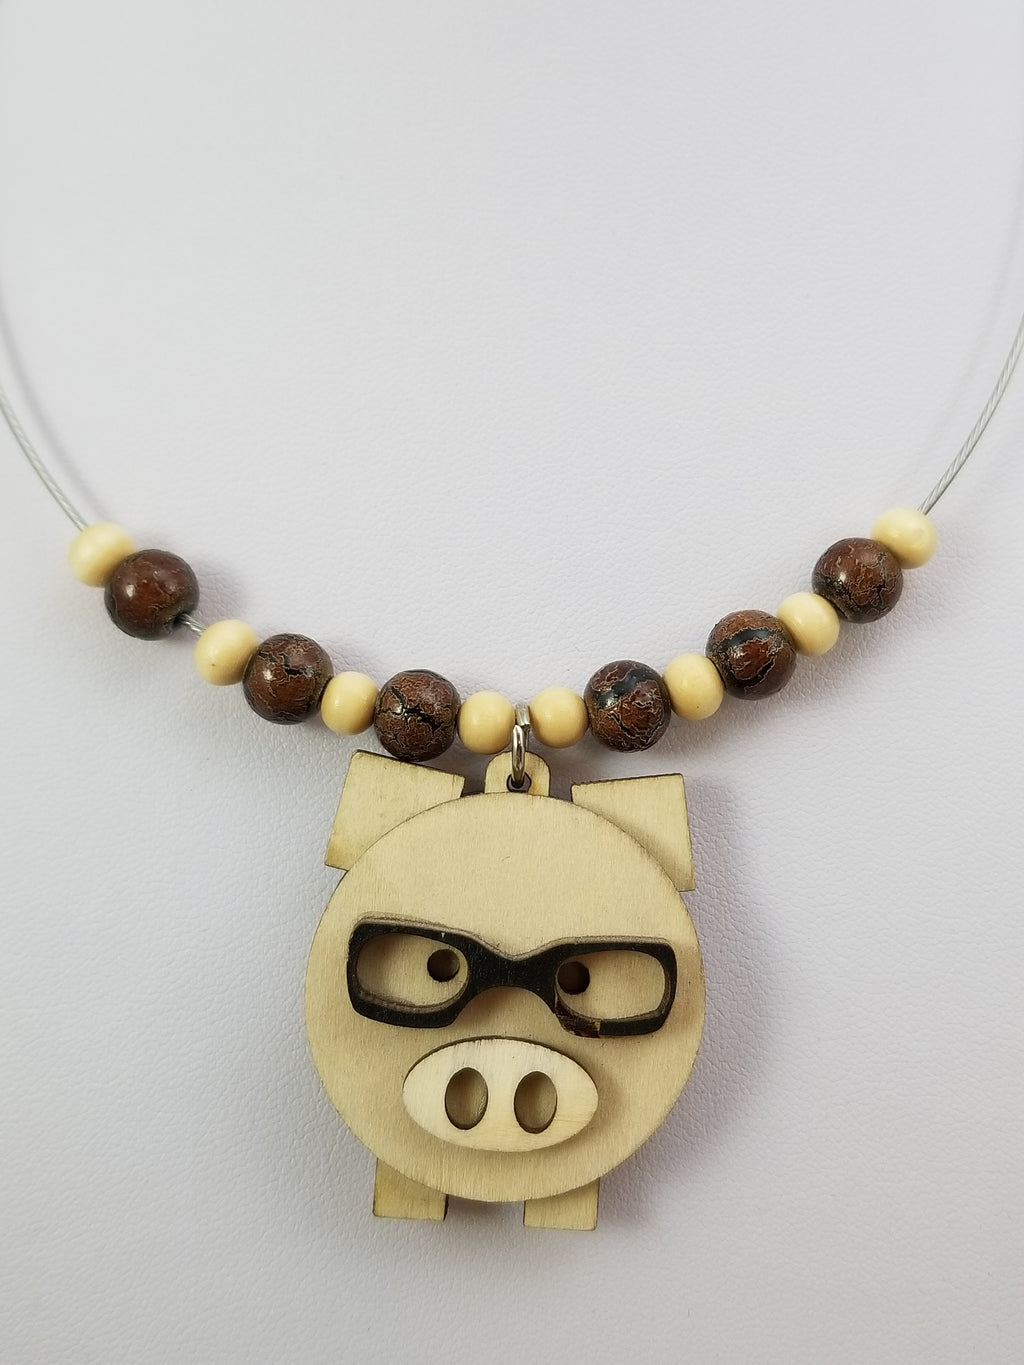 Mr. Piggy Necklace